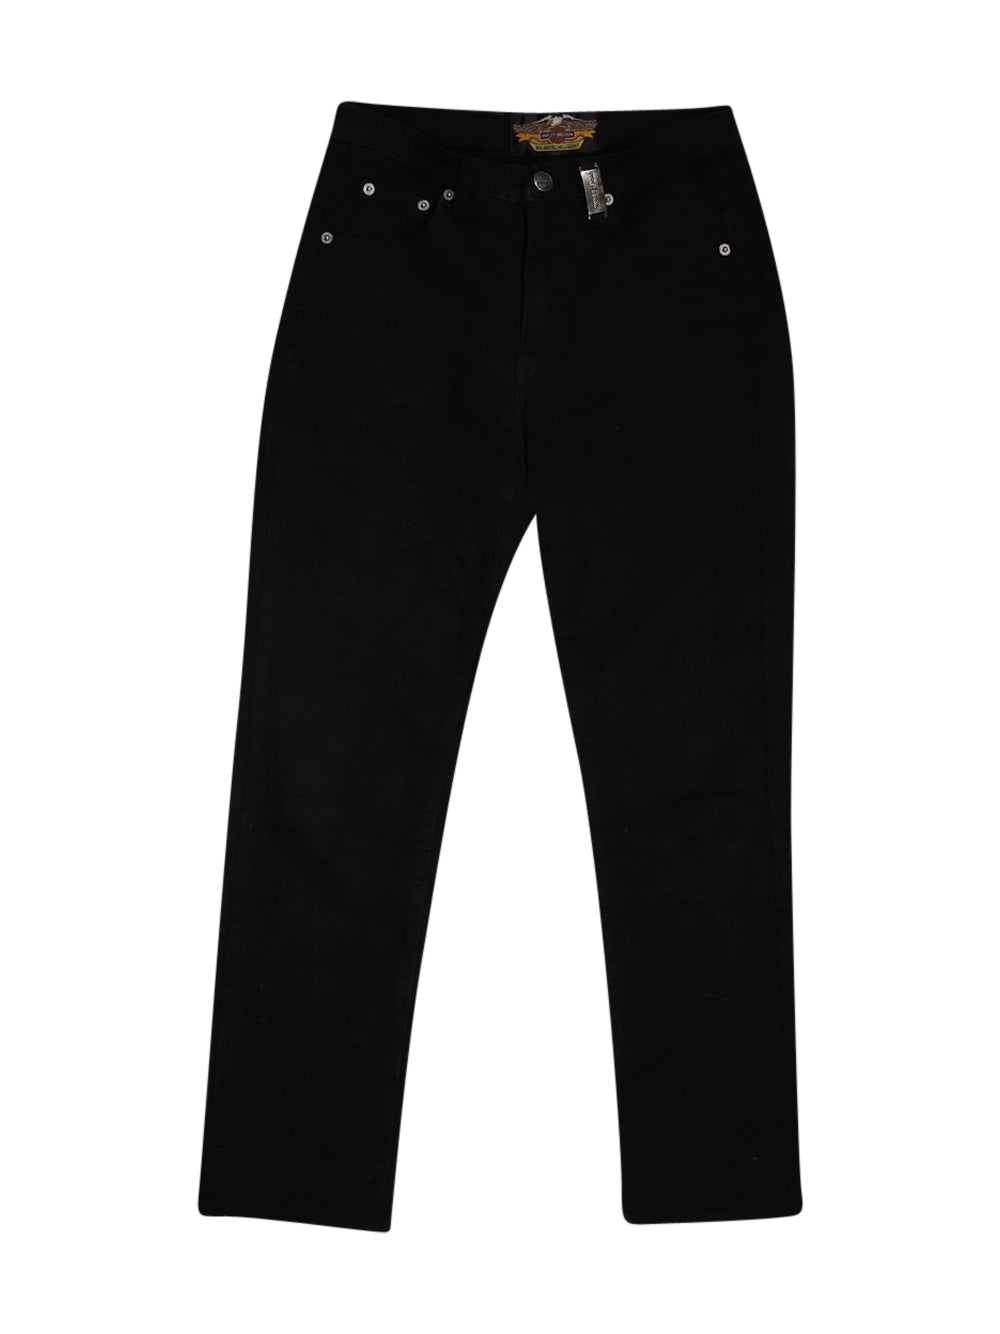 Front photo of Preloved Harley Davidson Black Woman's trousers - size 8/S